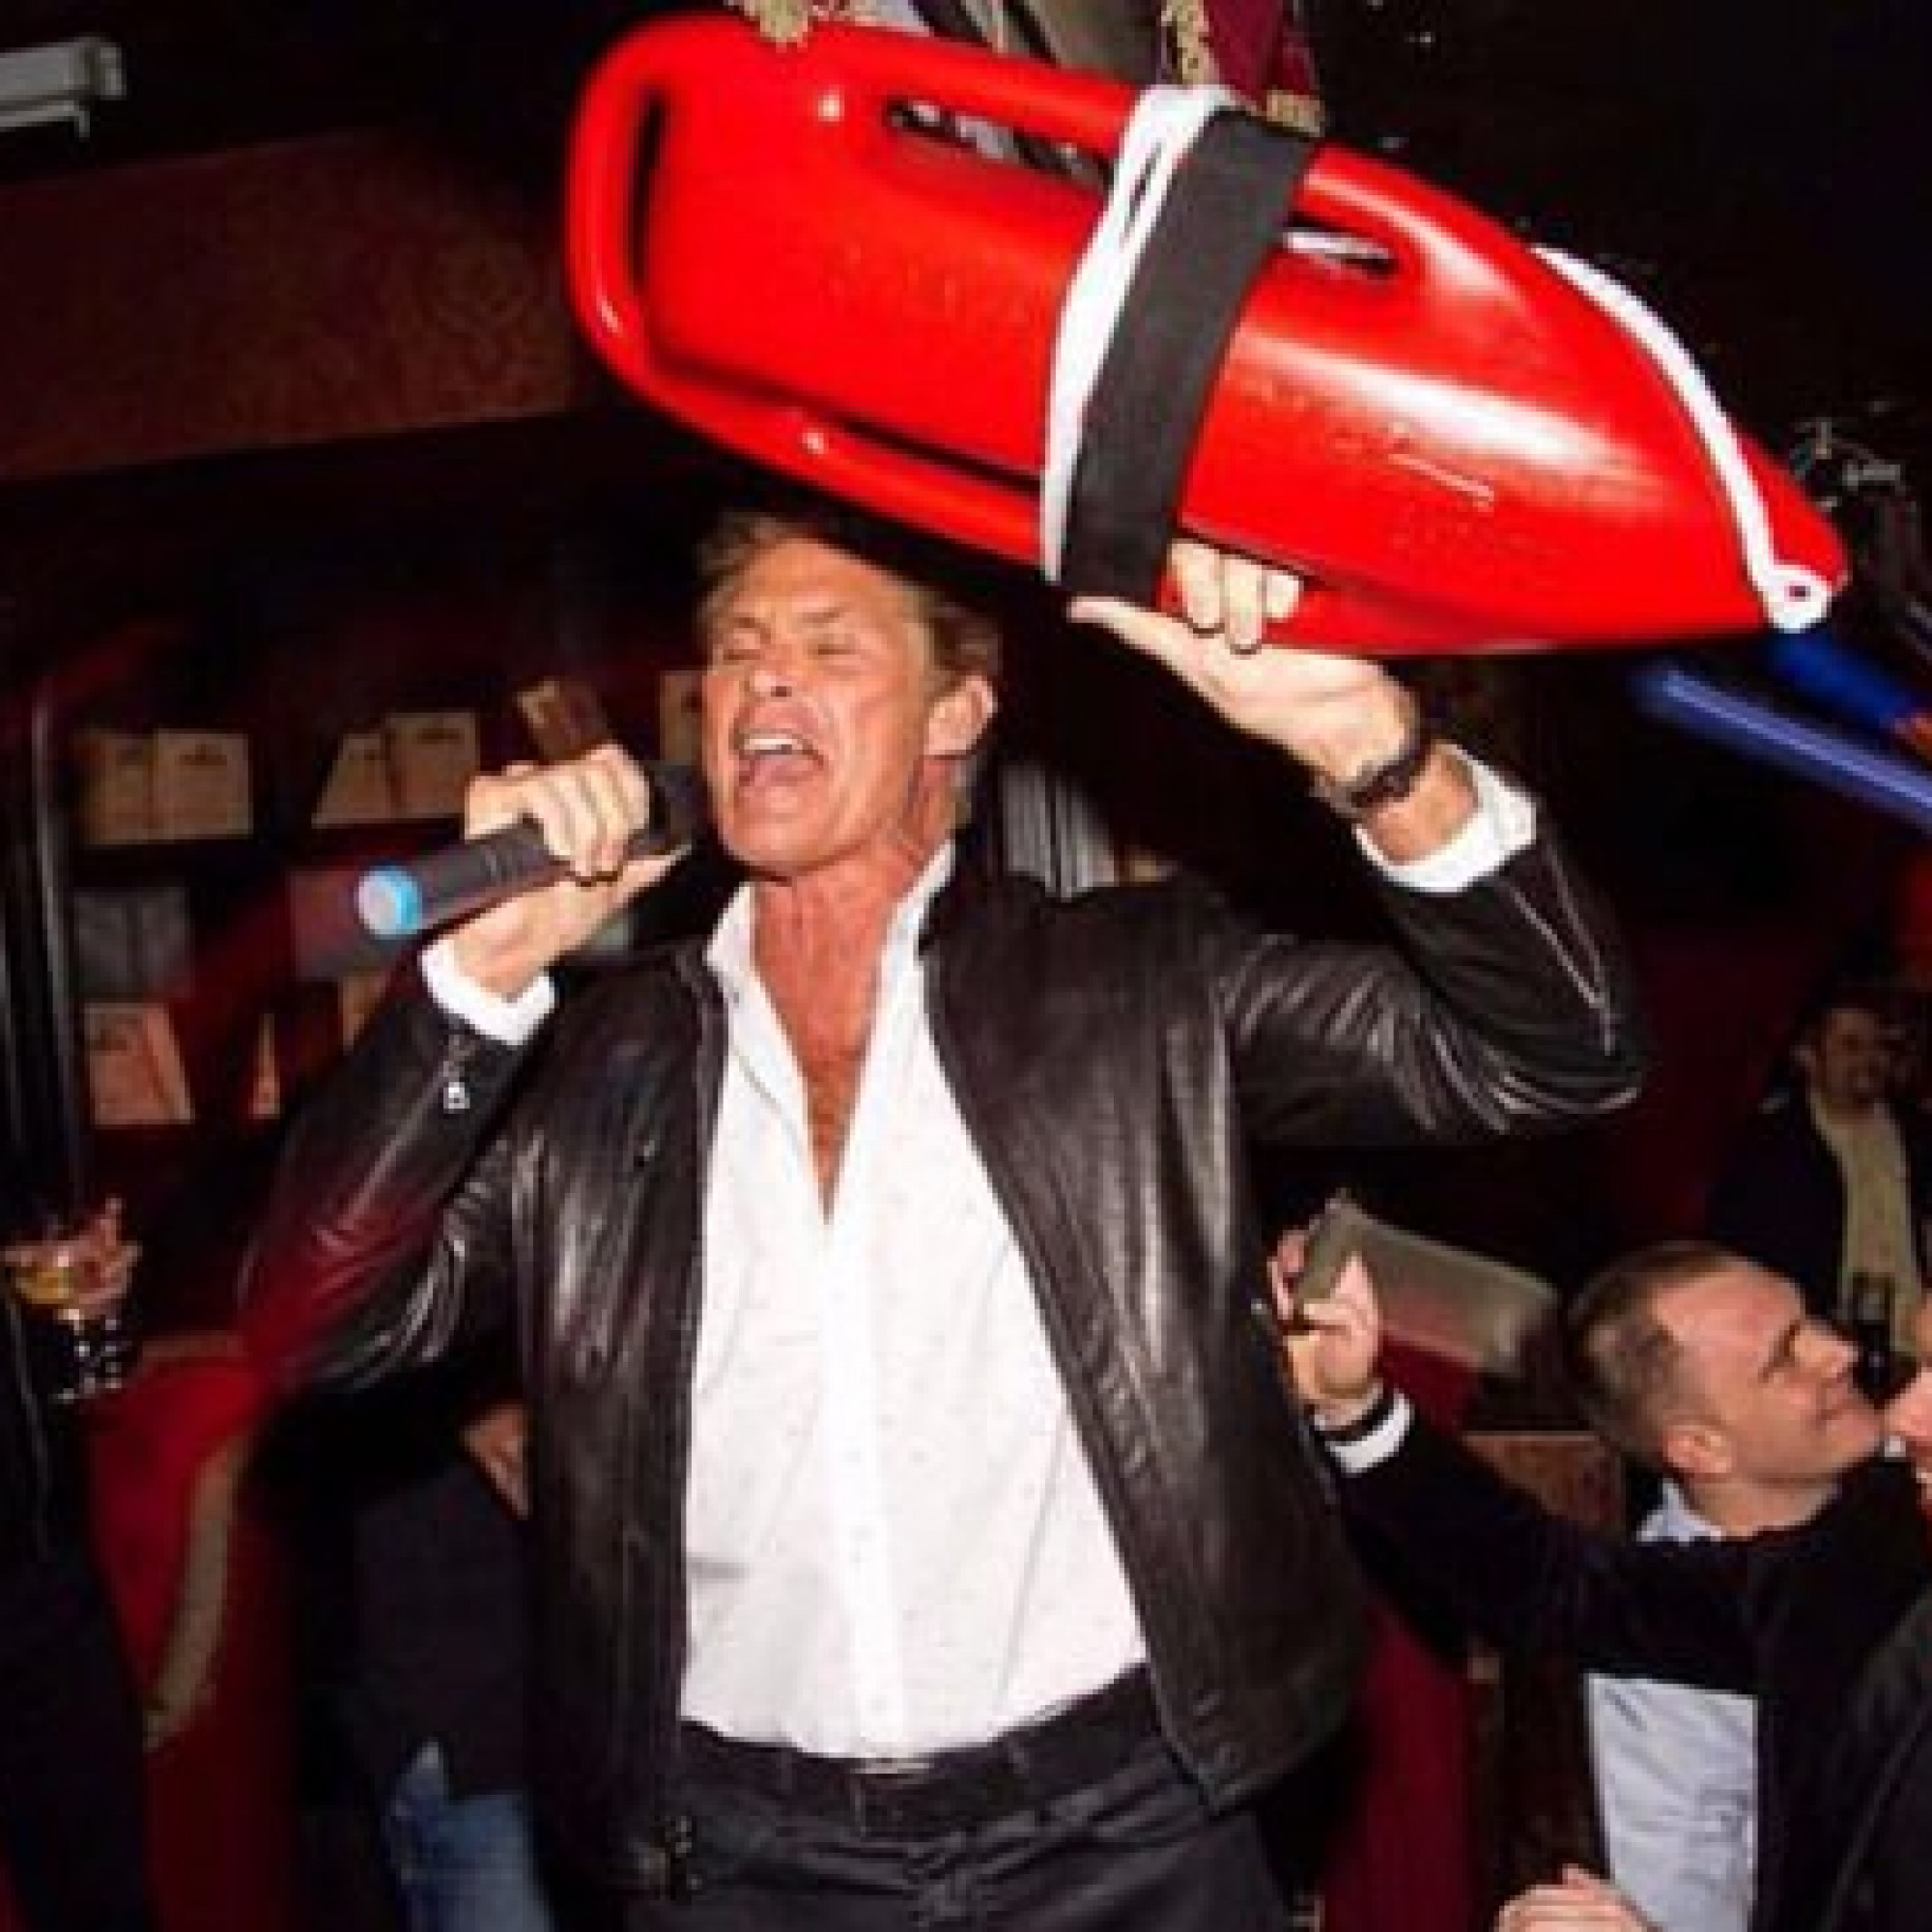 The Hoff belted out the Baywatch theme in a Dublin club last night